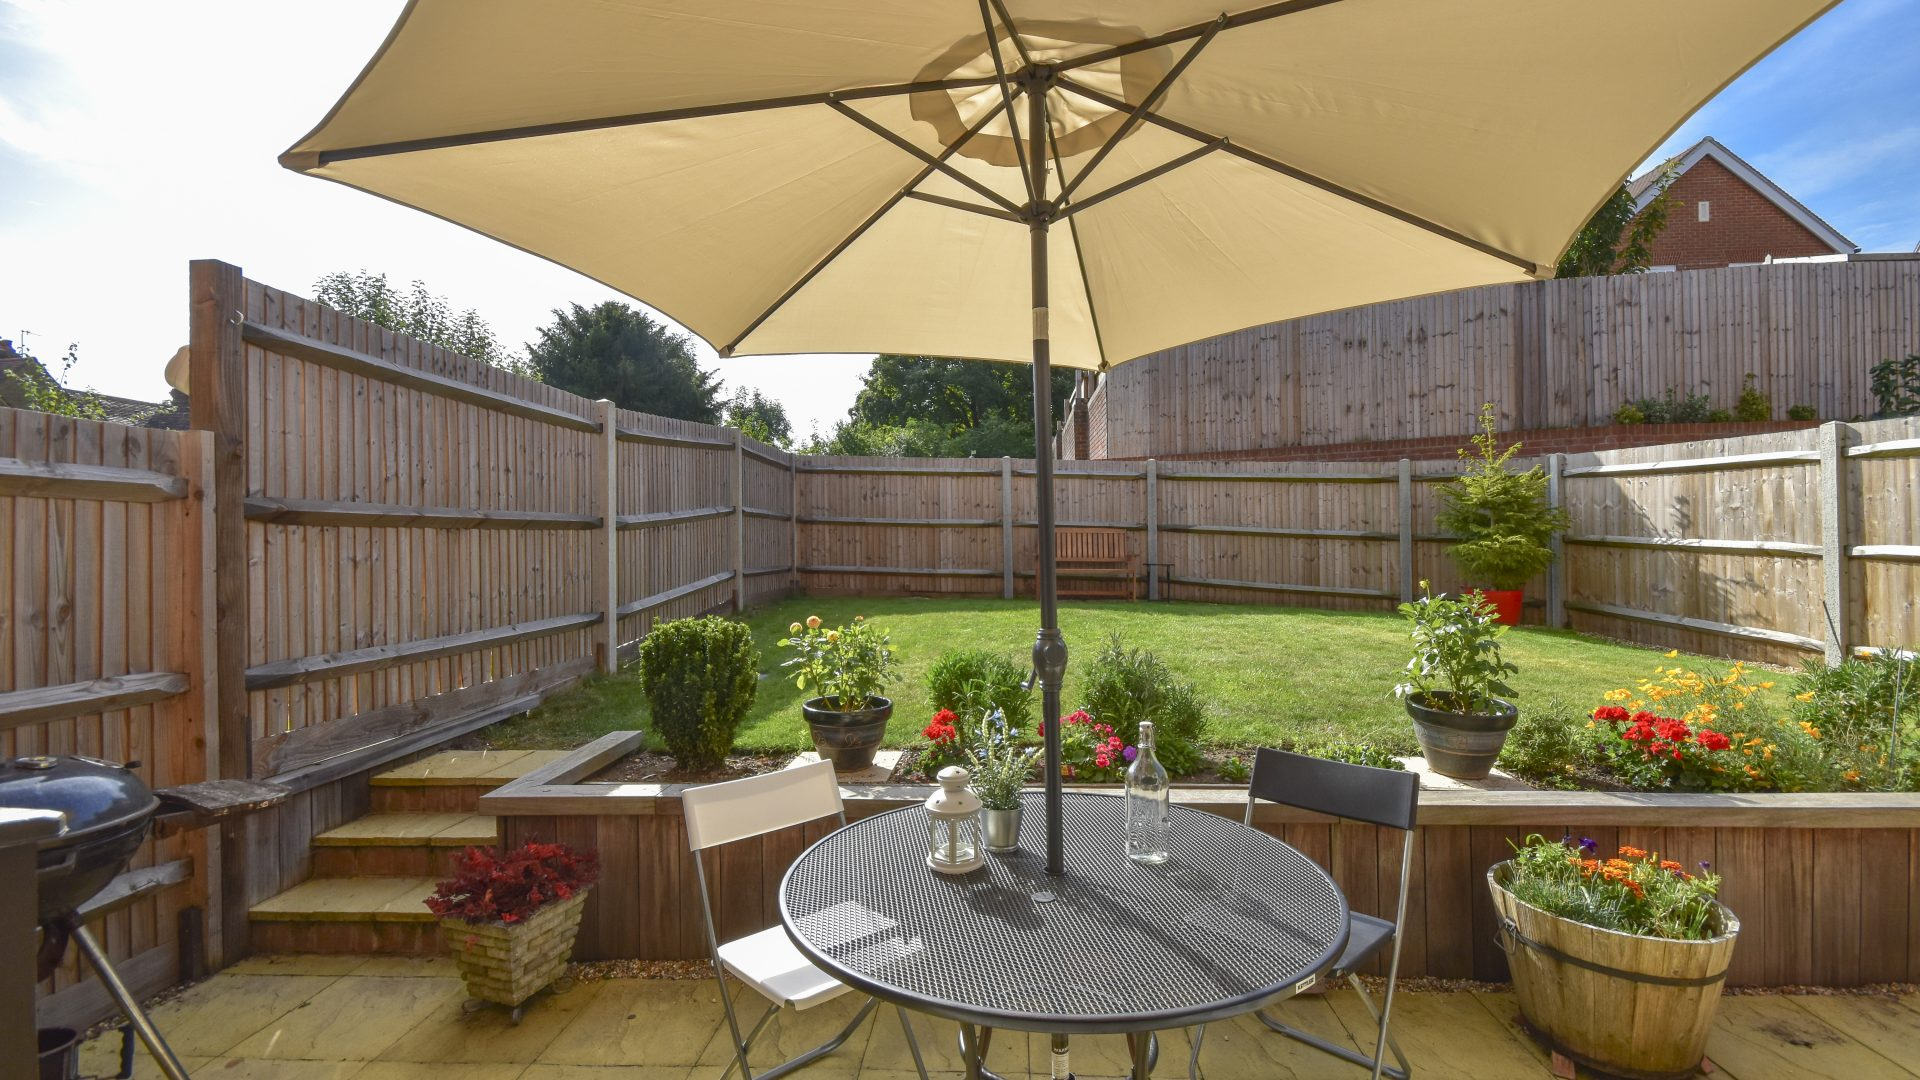 Burton Avenue, Leigh for sale with Mr and Mrs Clarke estate agent